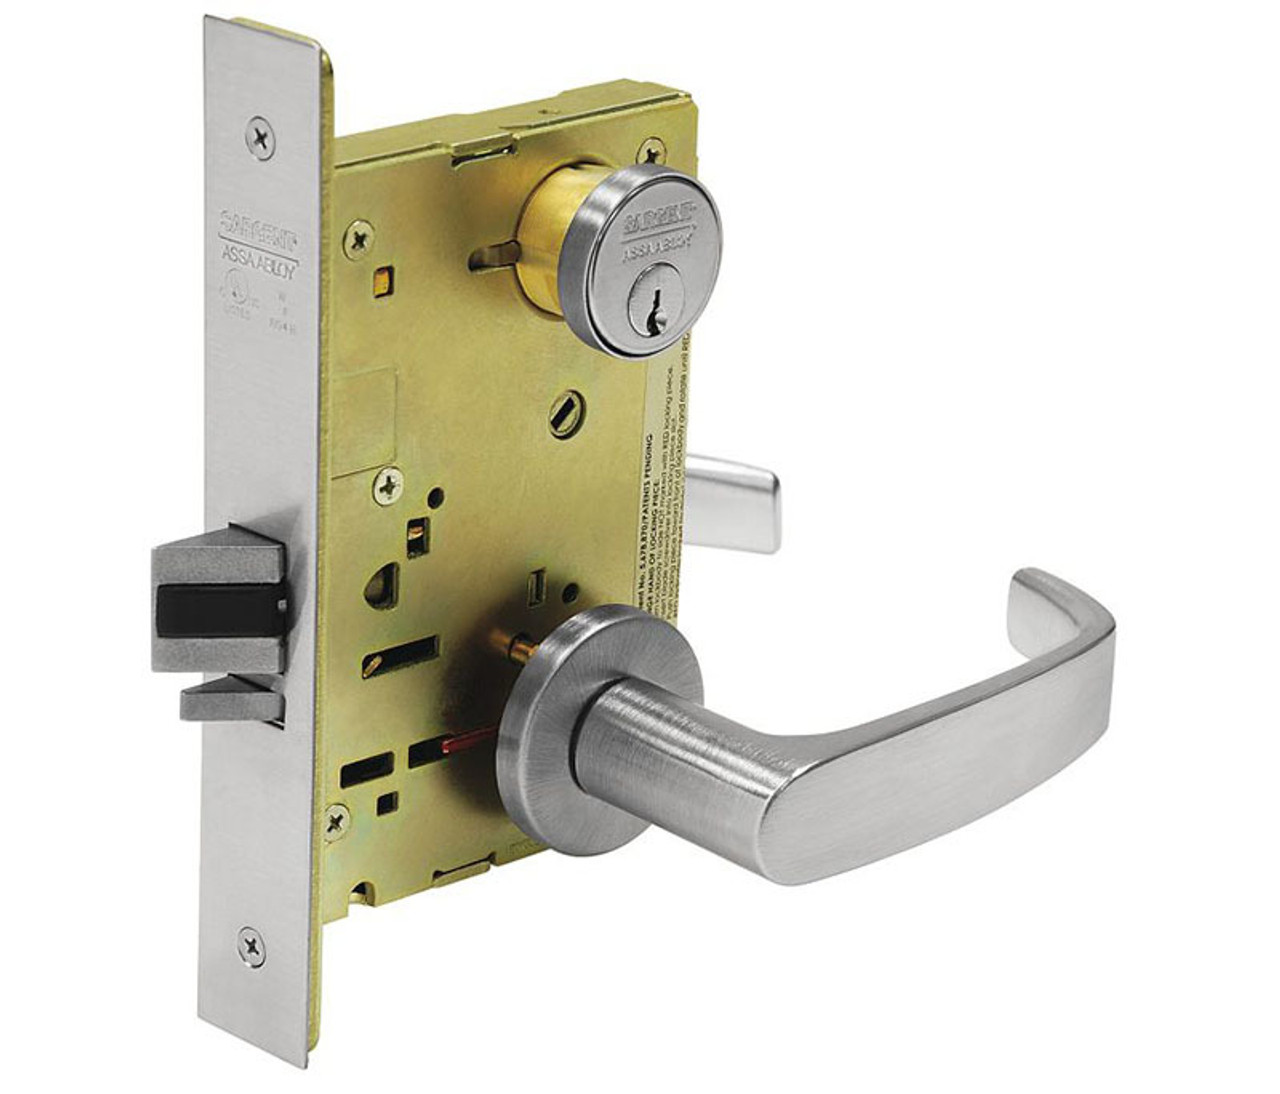 Sargent 8200 Series Satin Chrome Plated Passage or Closet Mortise Lock with L Lever 8215 LNL 26D LN Rose Trim Pack of 1